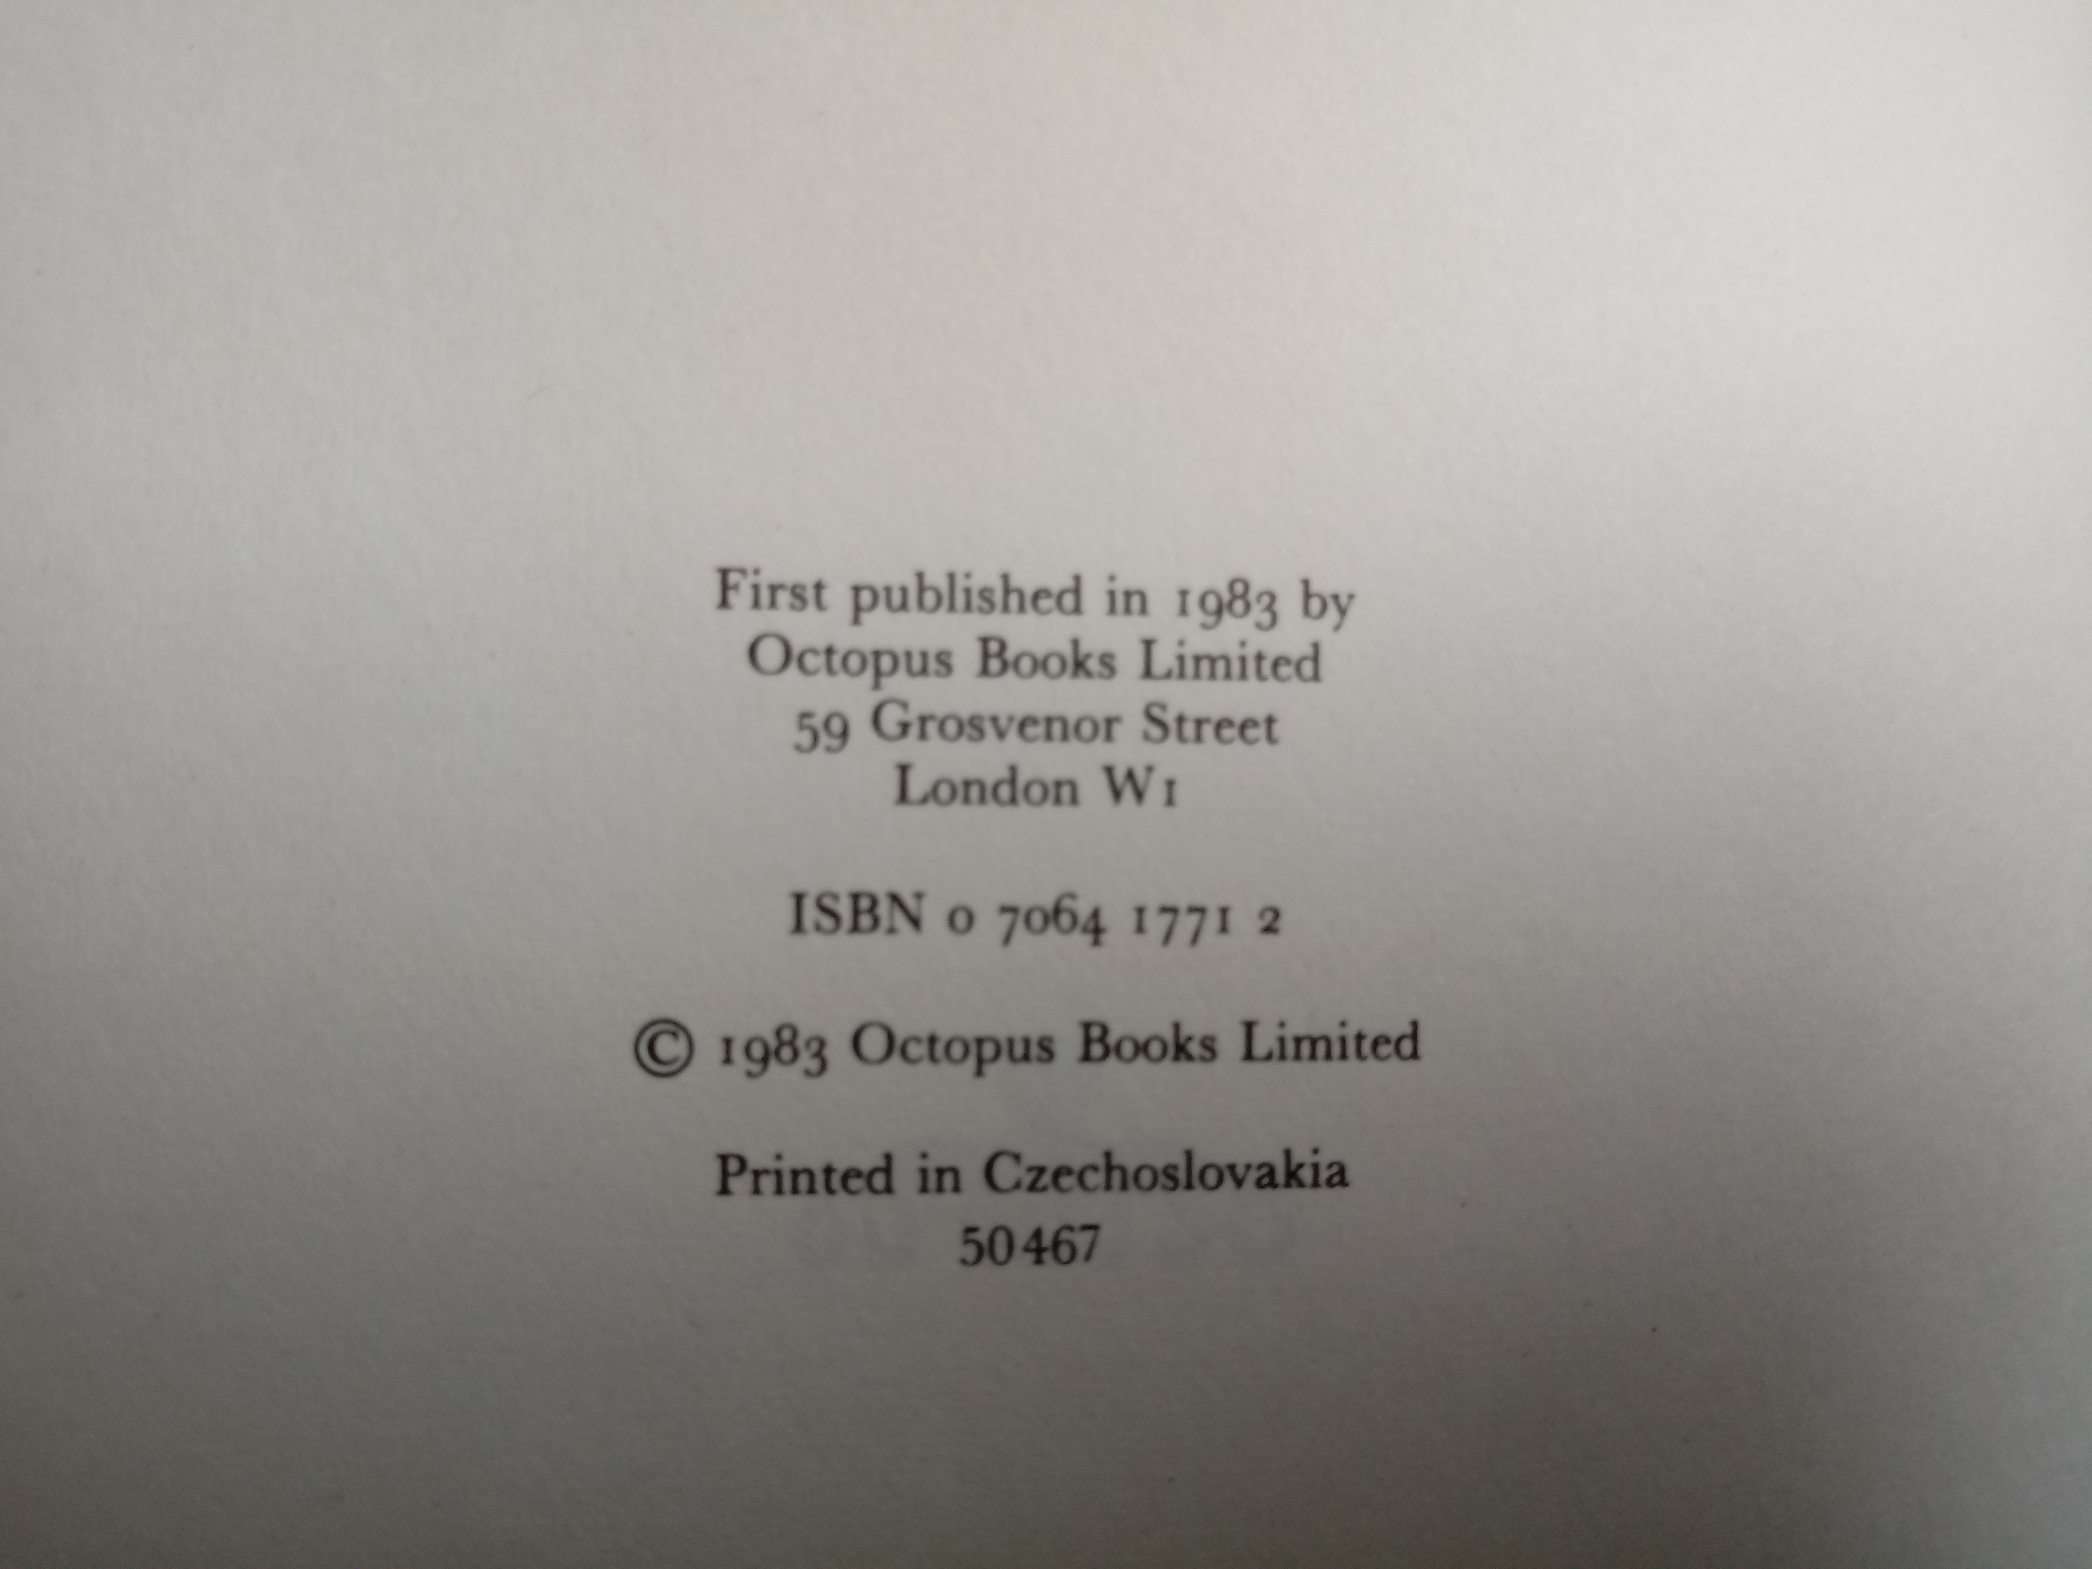 The World's Greatest Ghosts by Nigel Blundell & Roger Boar hardback book 192 pages Published 1983 - Image 2 of 2